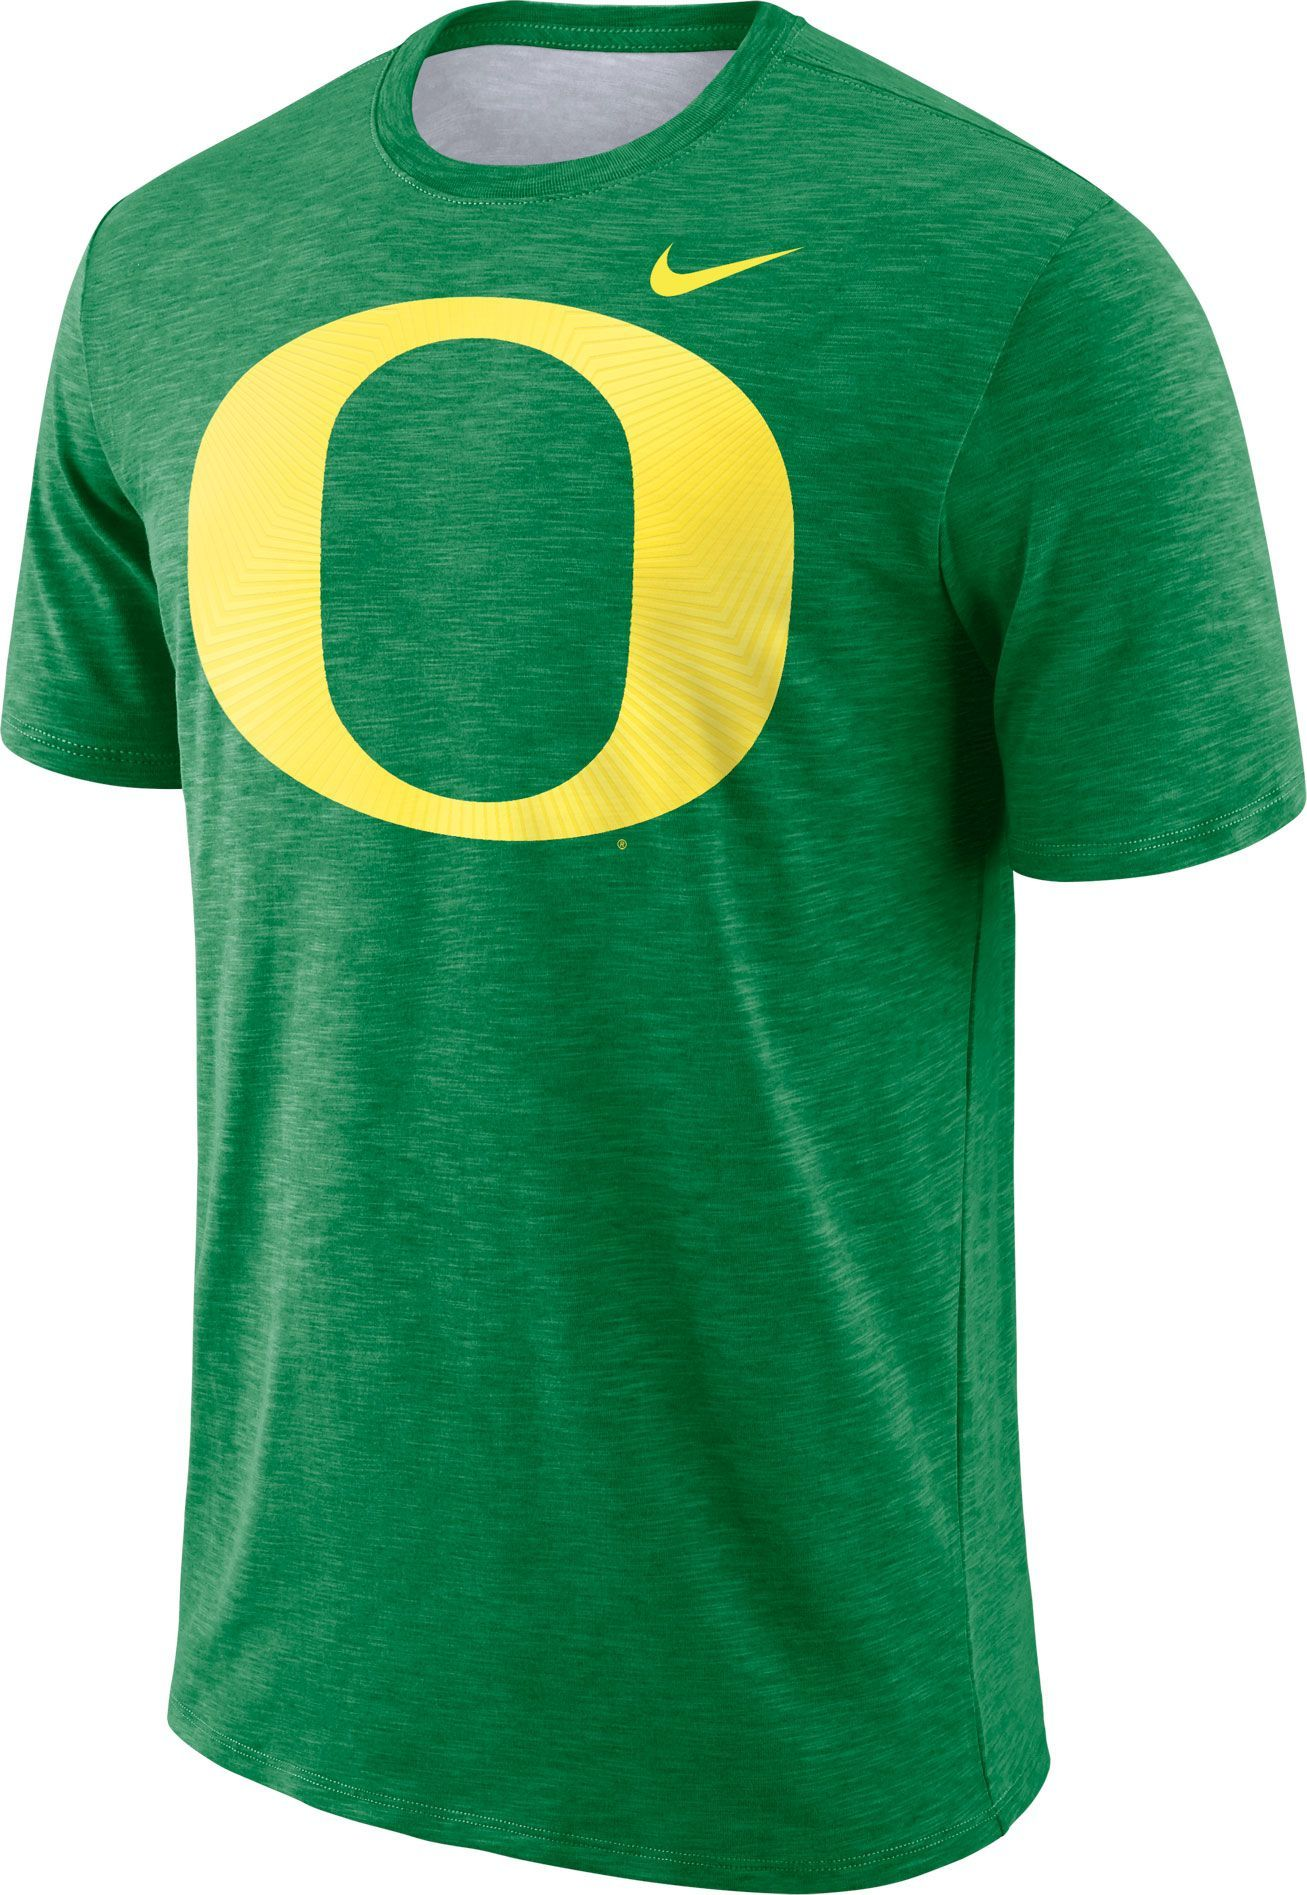 10f0be90 Nike Men's Oregon Ducks Green Dri-FIT Football Sideline Slub T-Shirt, Team